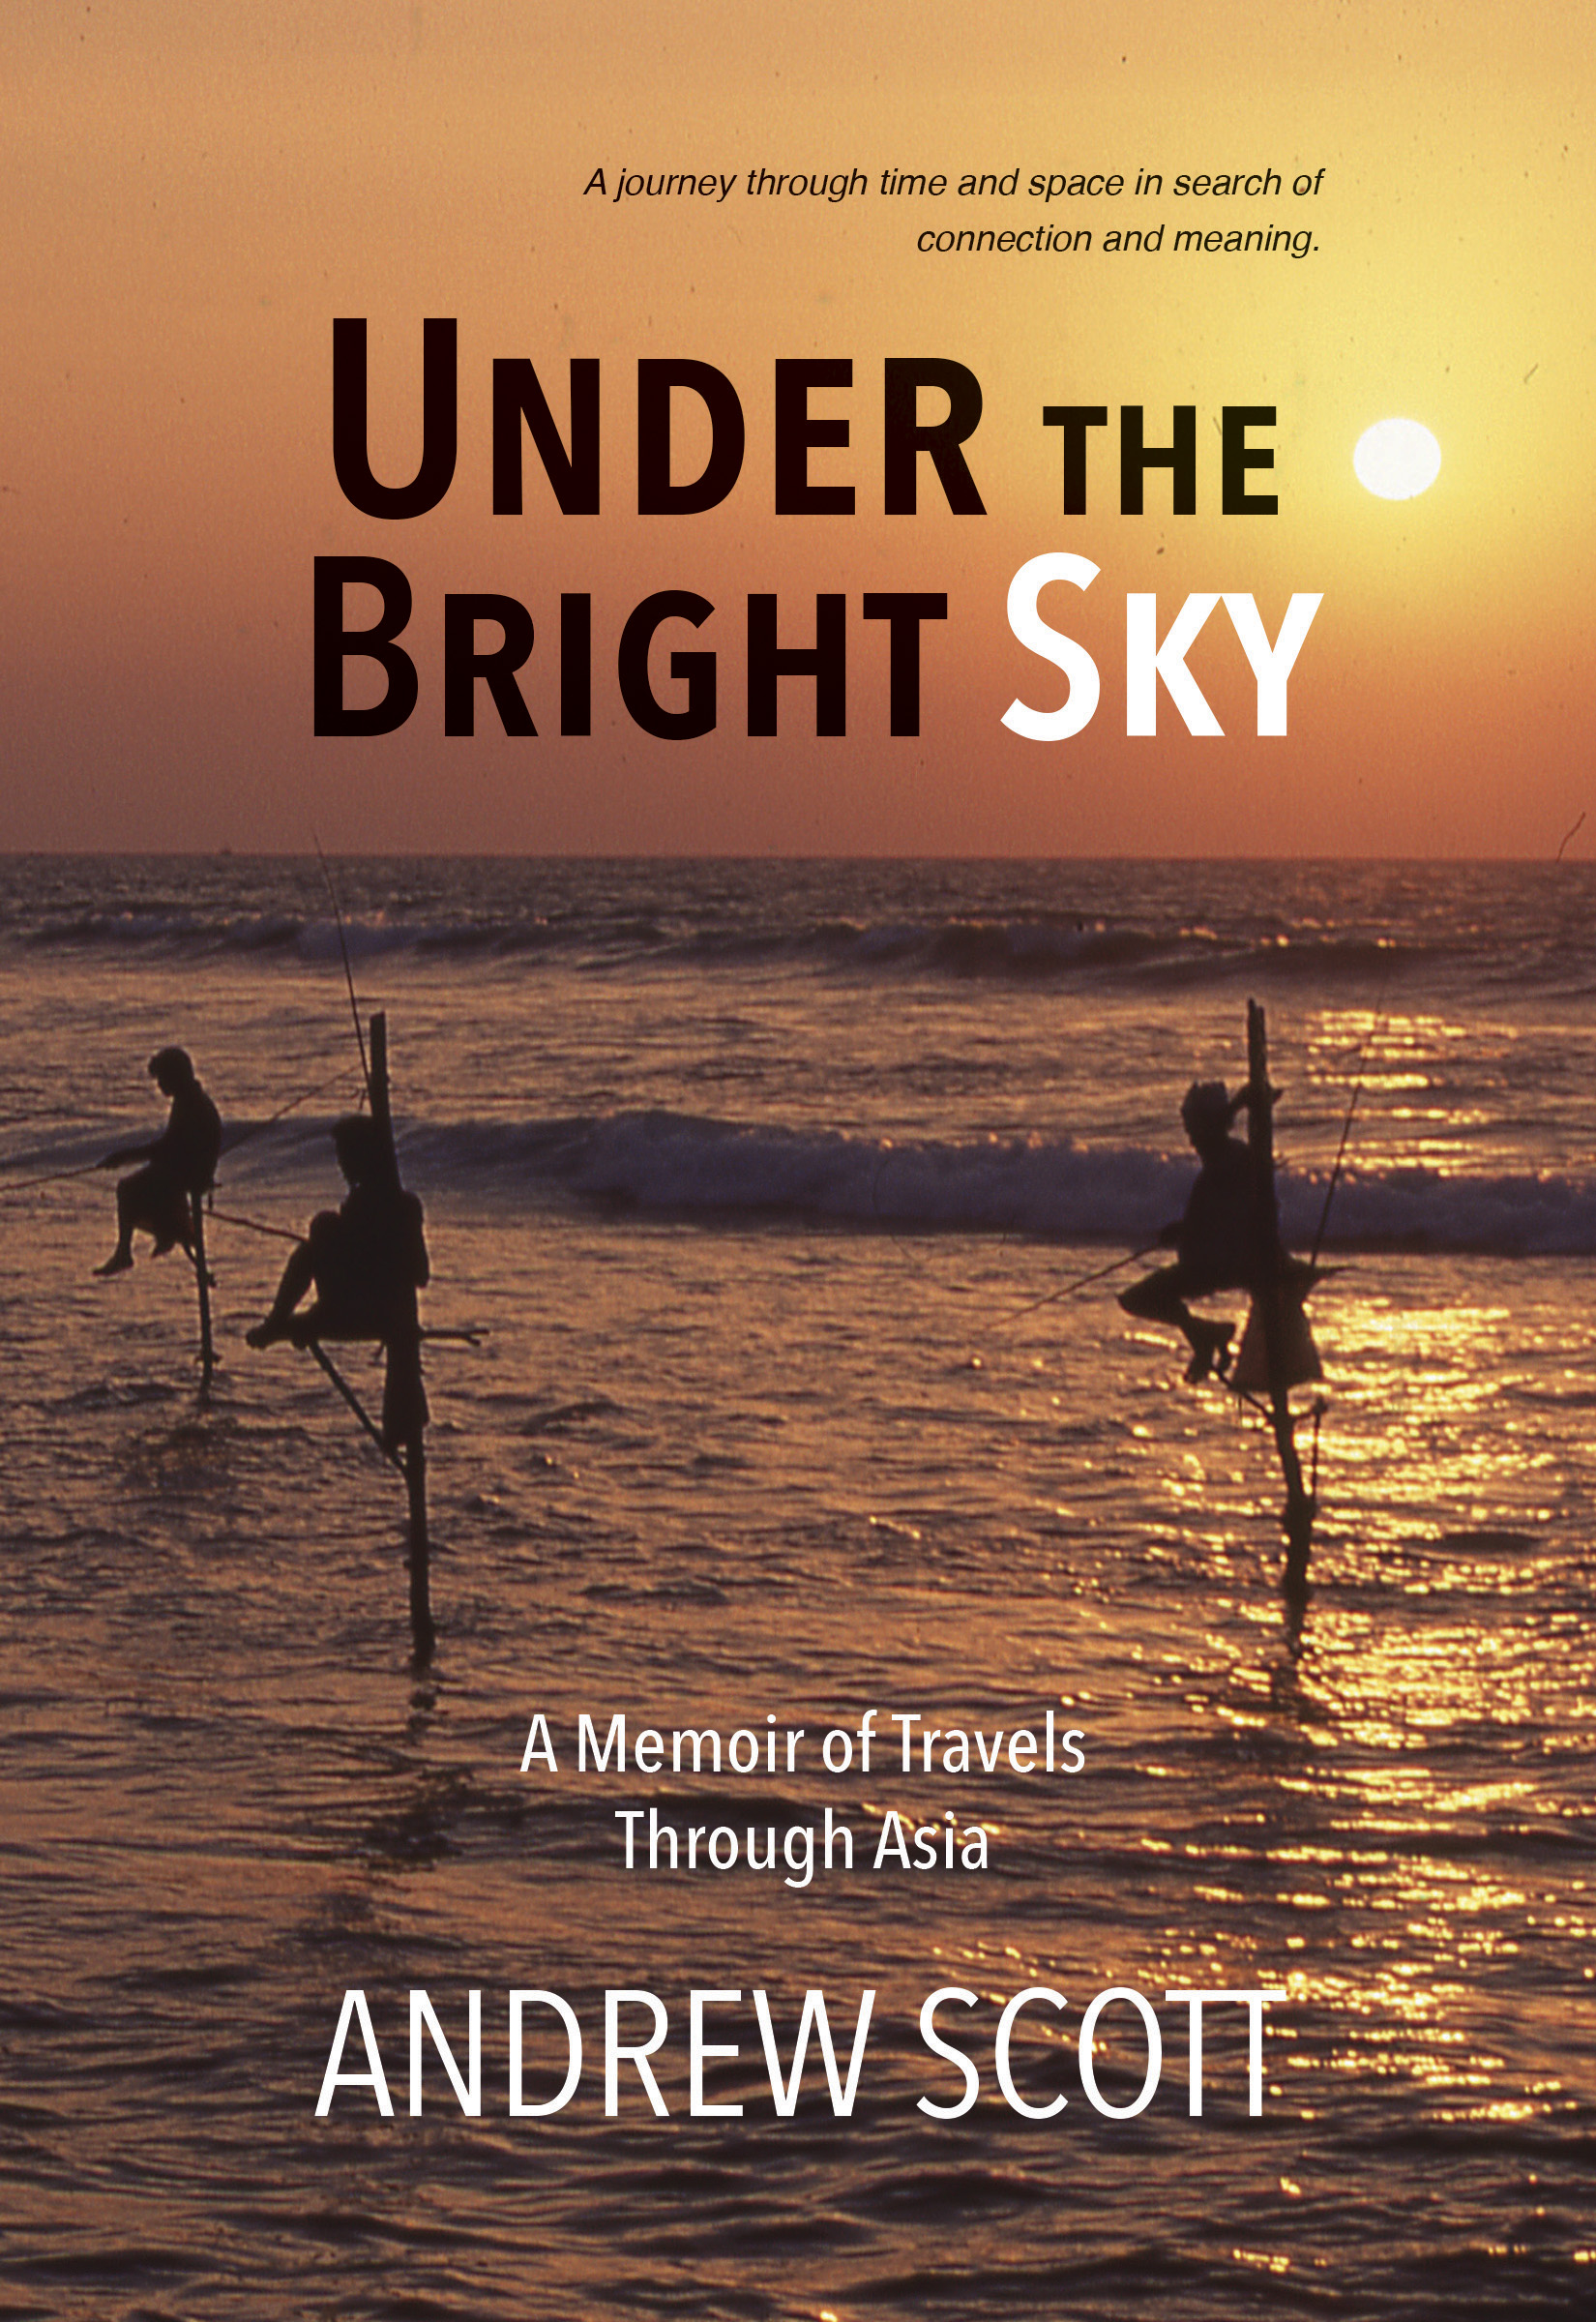 Under the Bright Sky